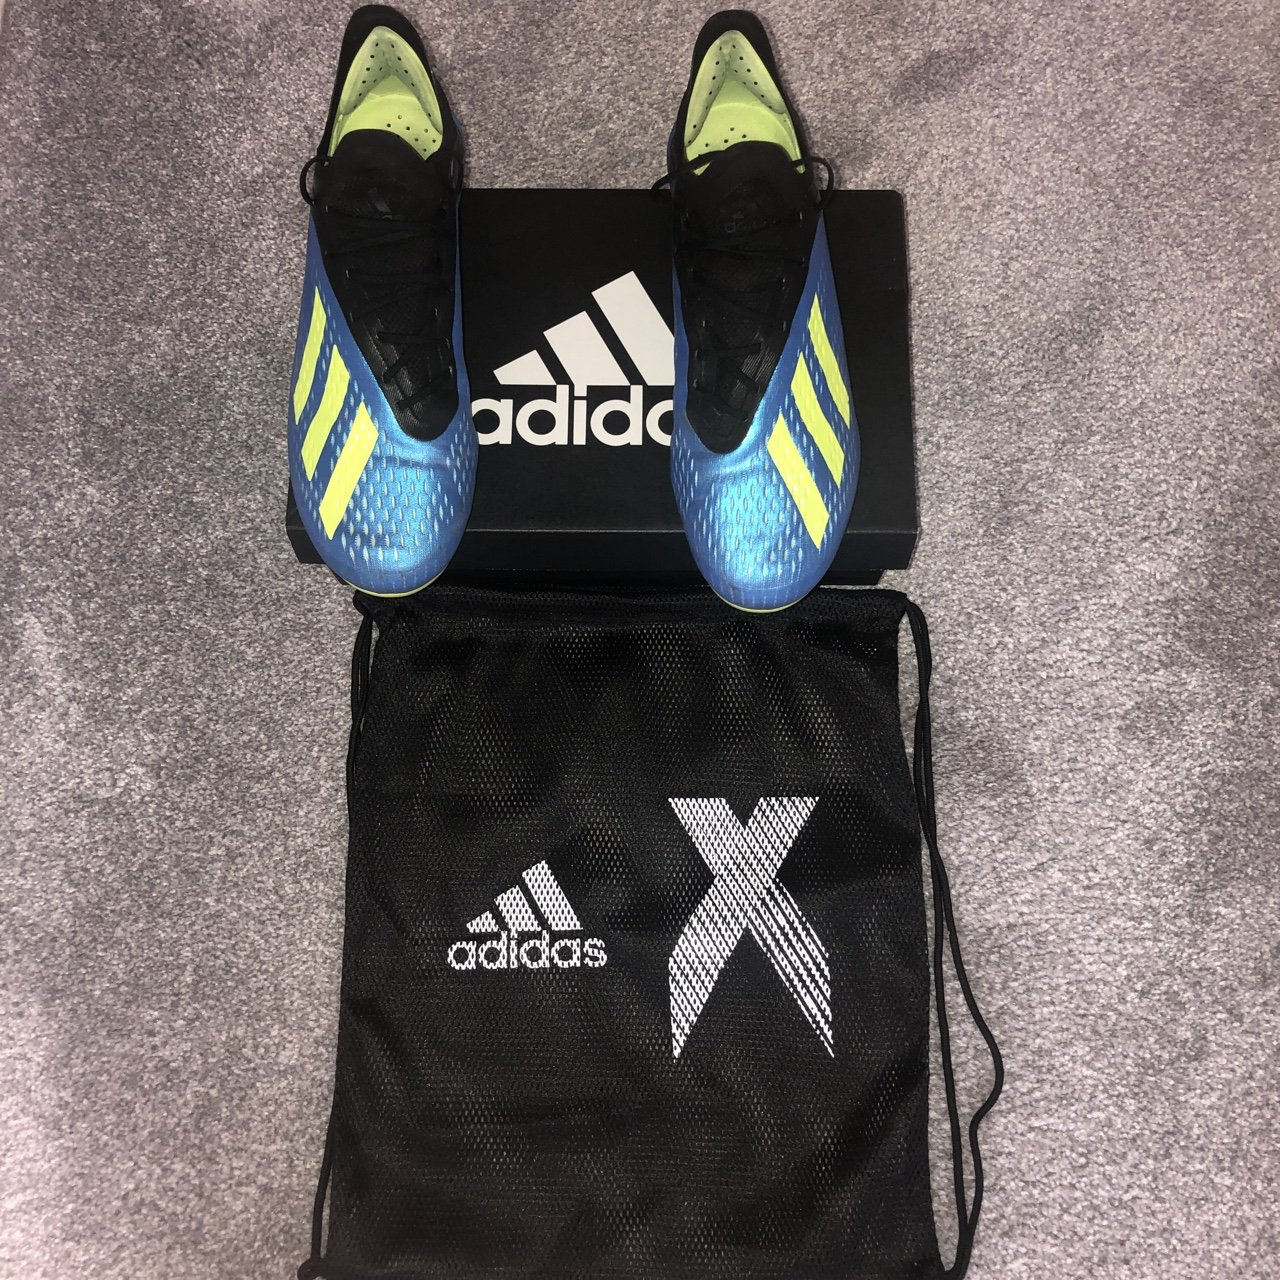 eebc429a85ad Men s Adidas X 18.1 soft ground football boots Bought for 8 - Depop